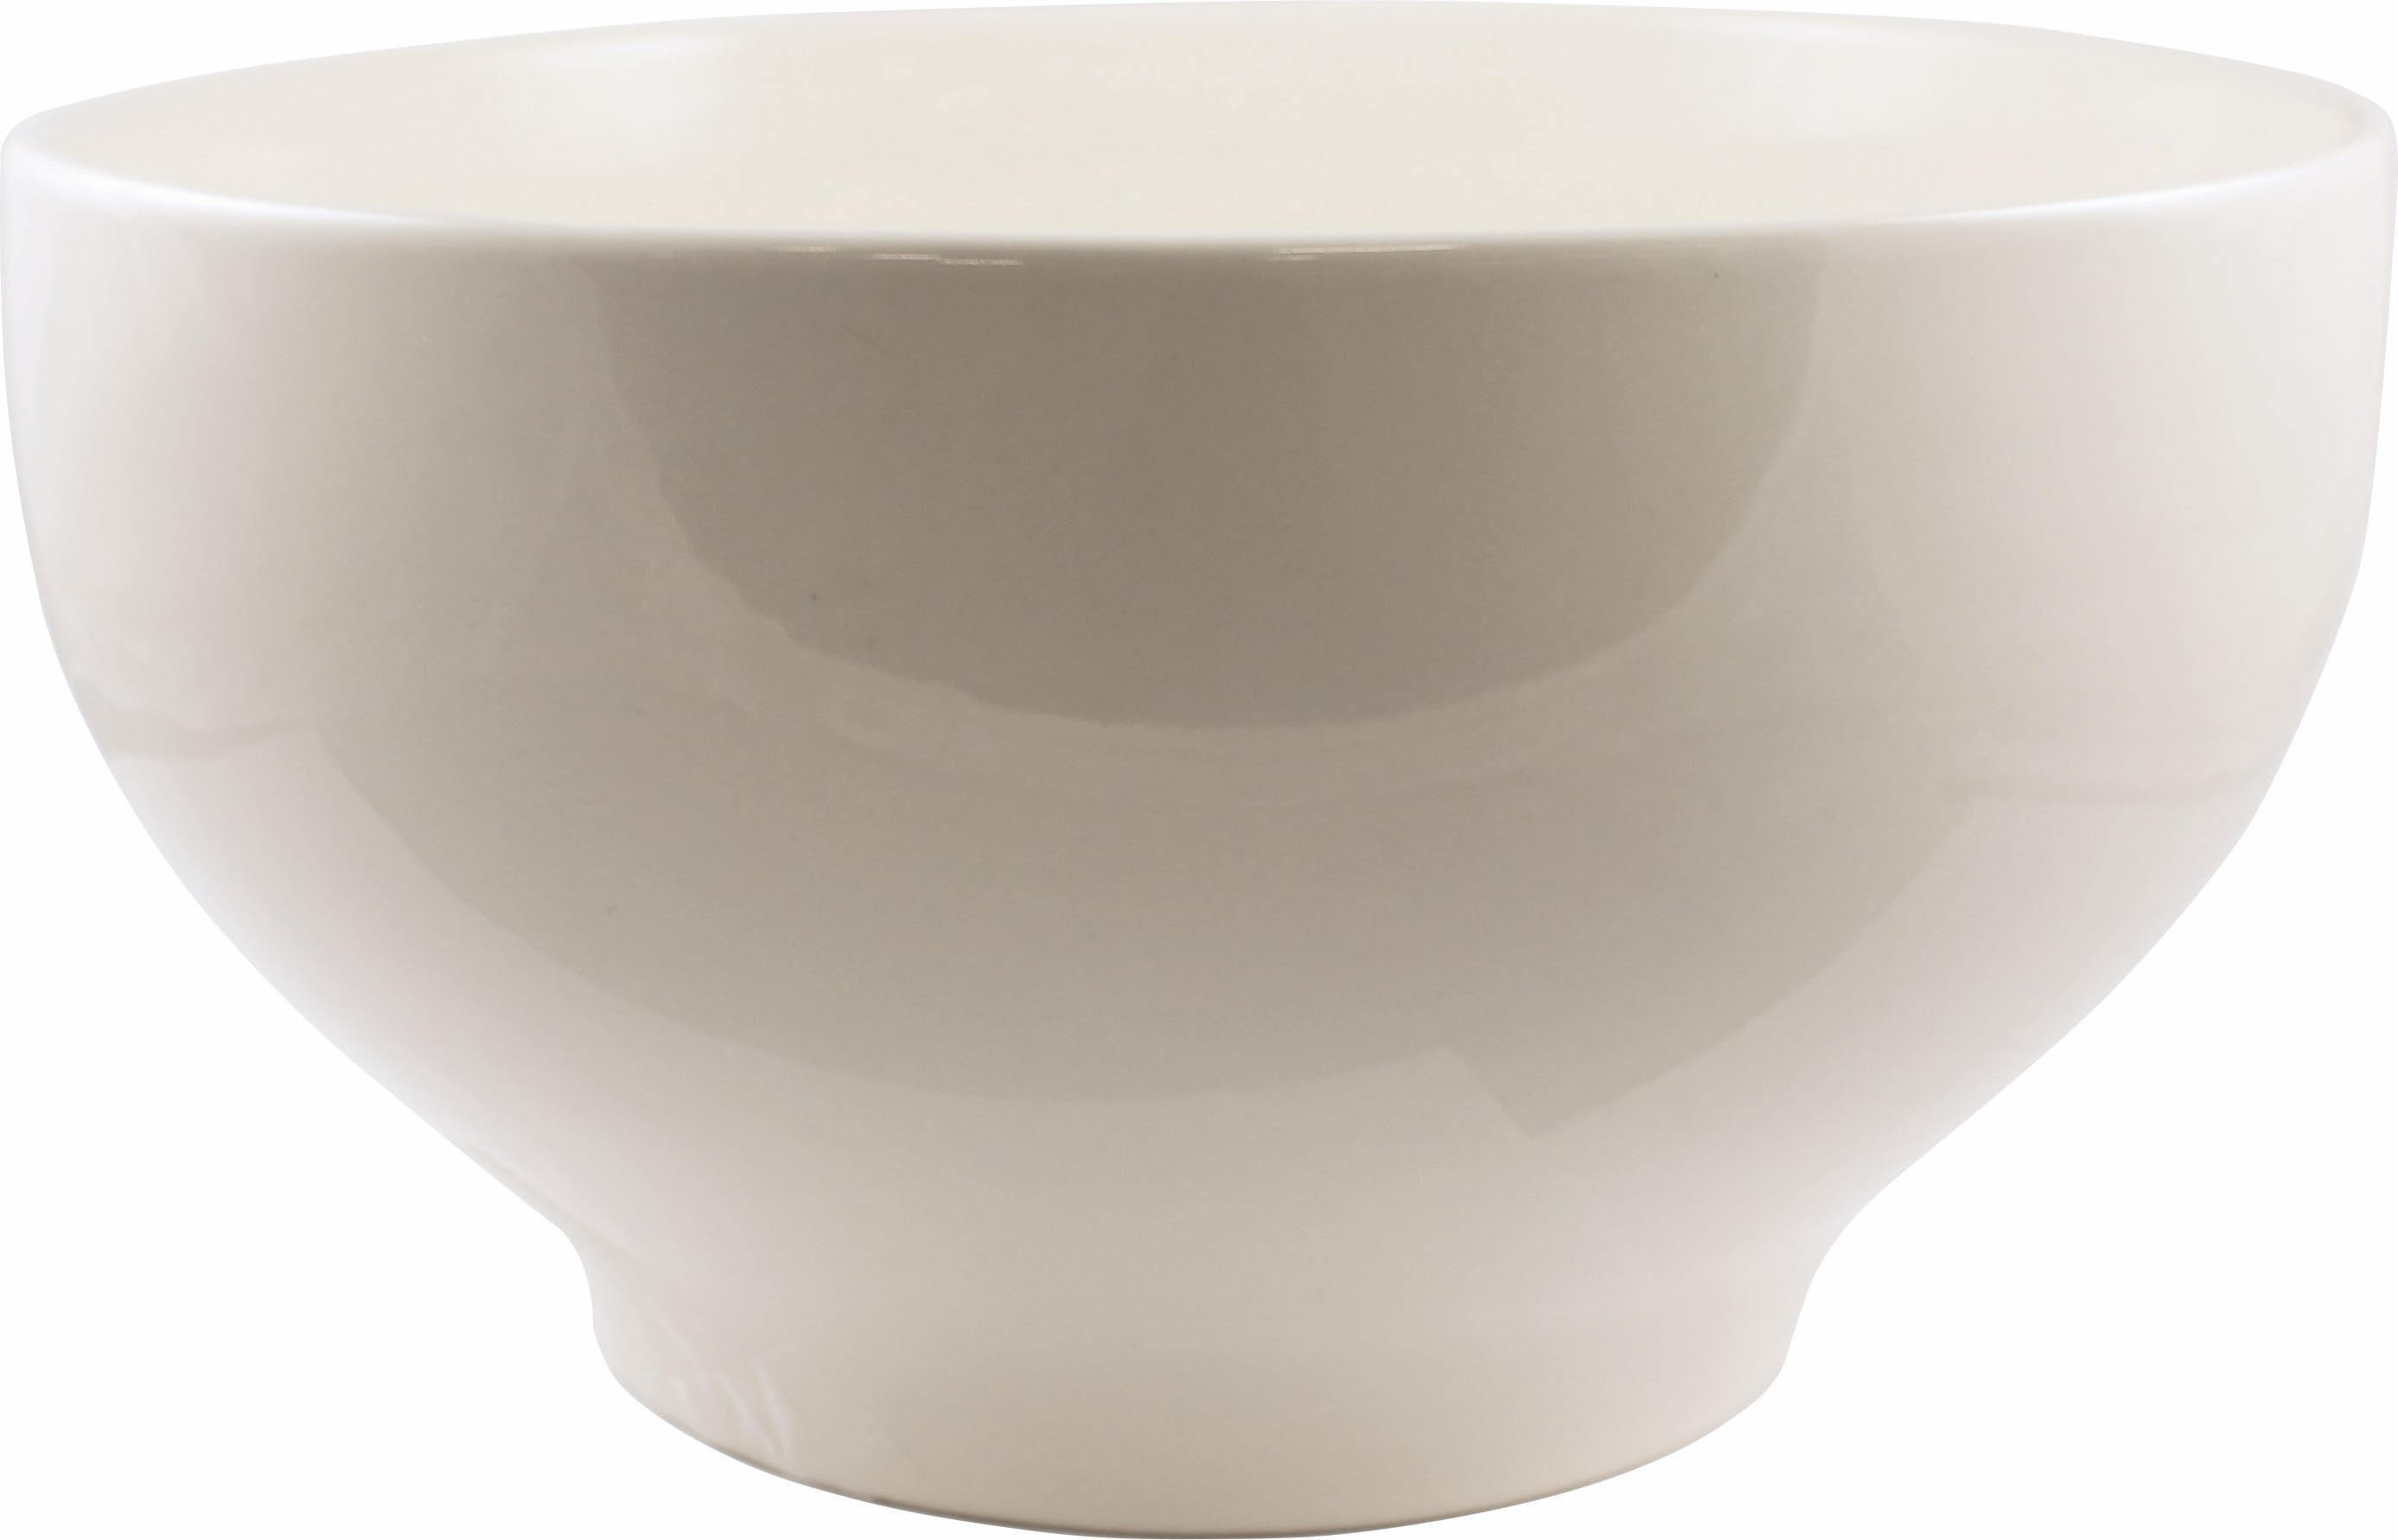 140 oz. Roma Footed Bowl  Plate sold by Prestige Glassware